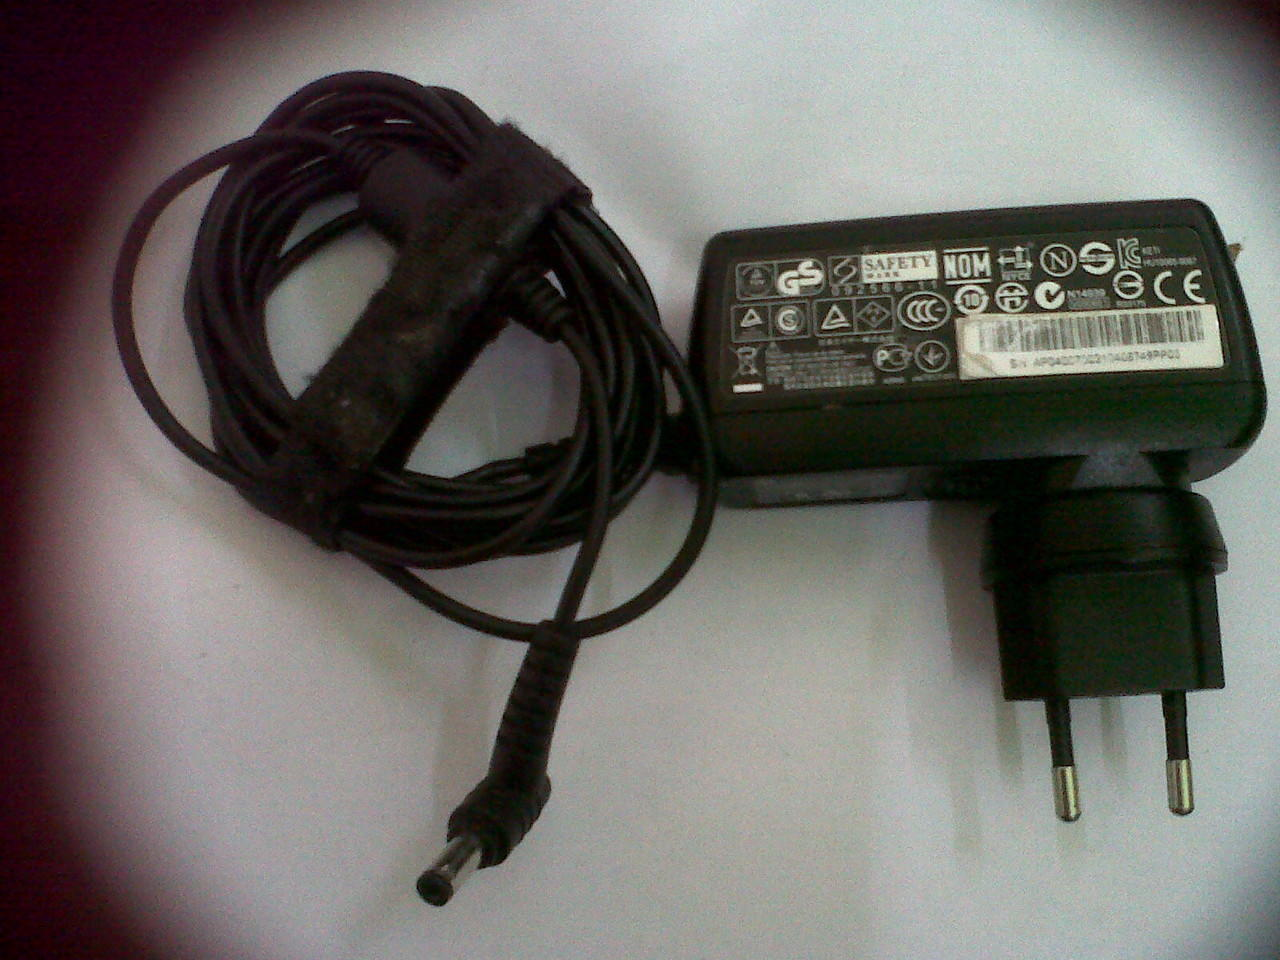 CHARGER NETBOOK ACER ASPIRE ONE ORI